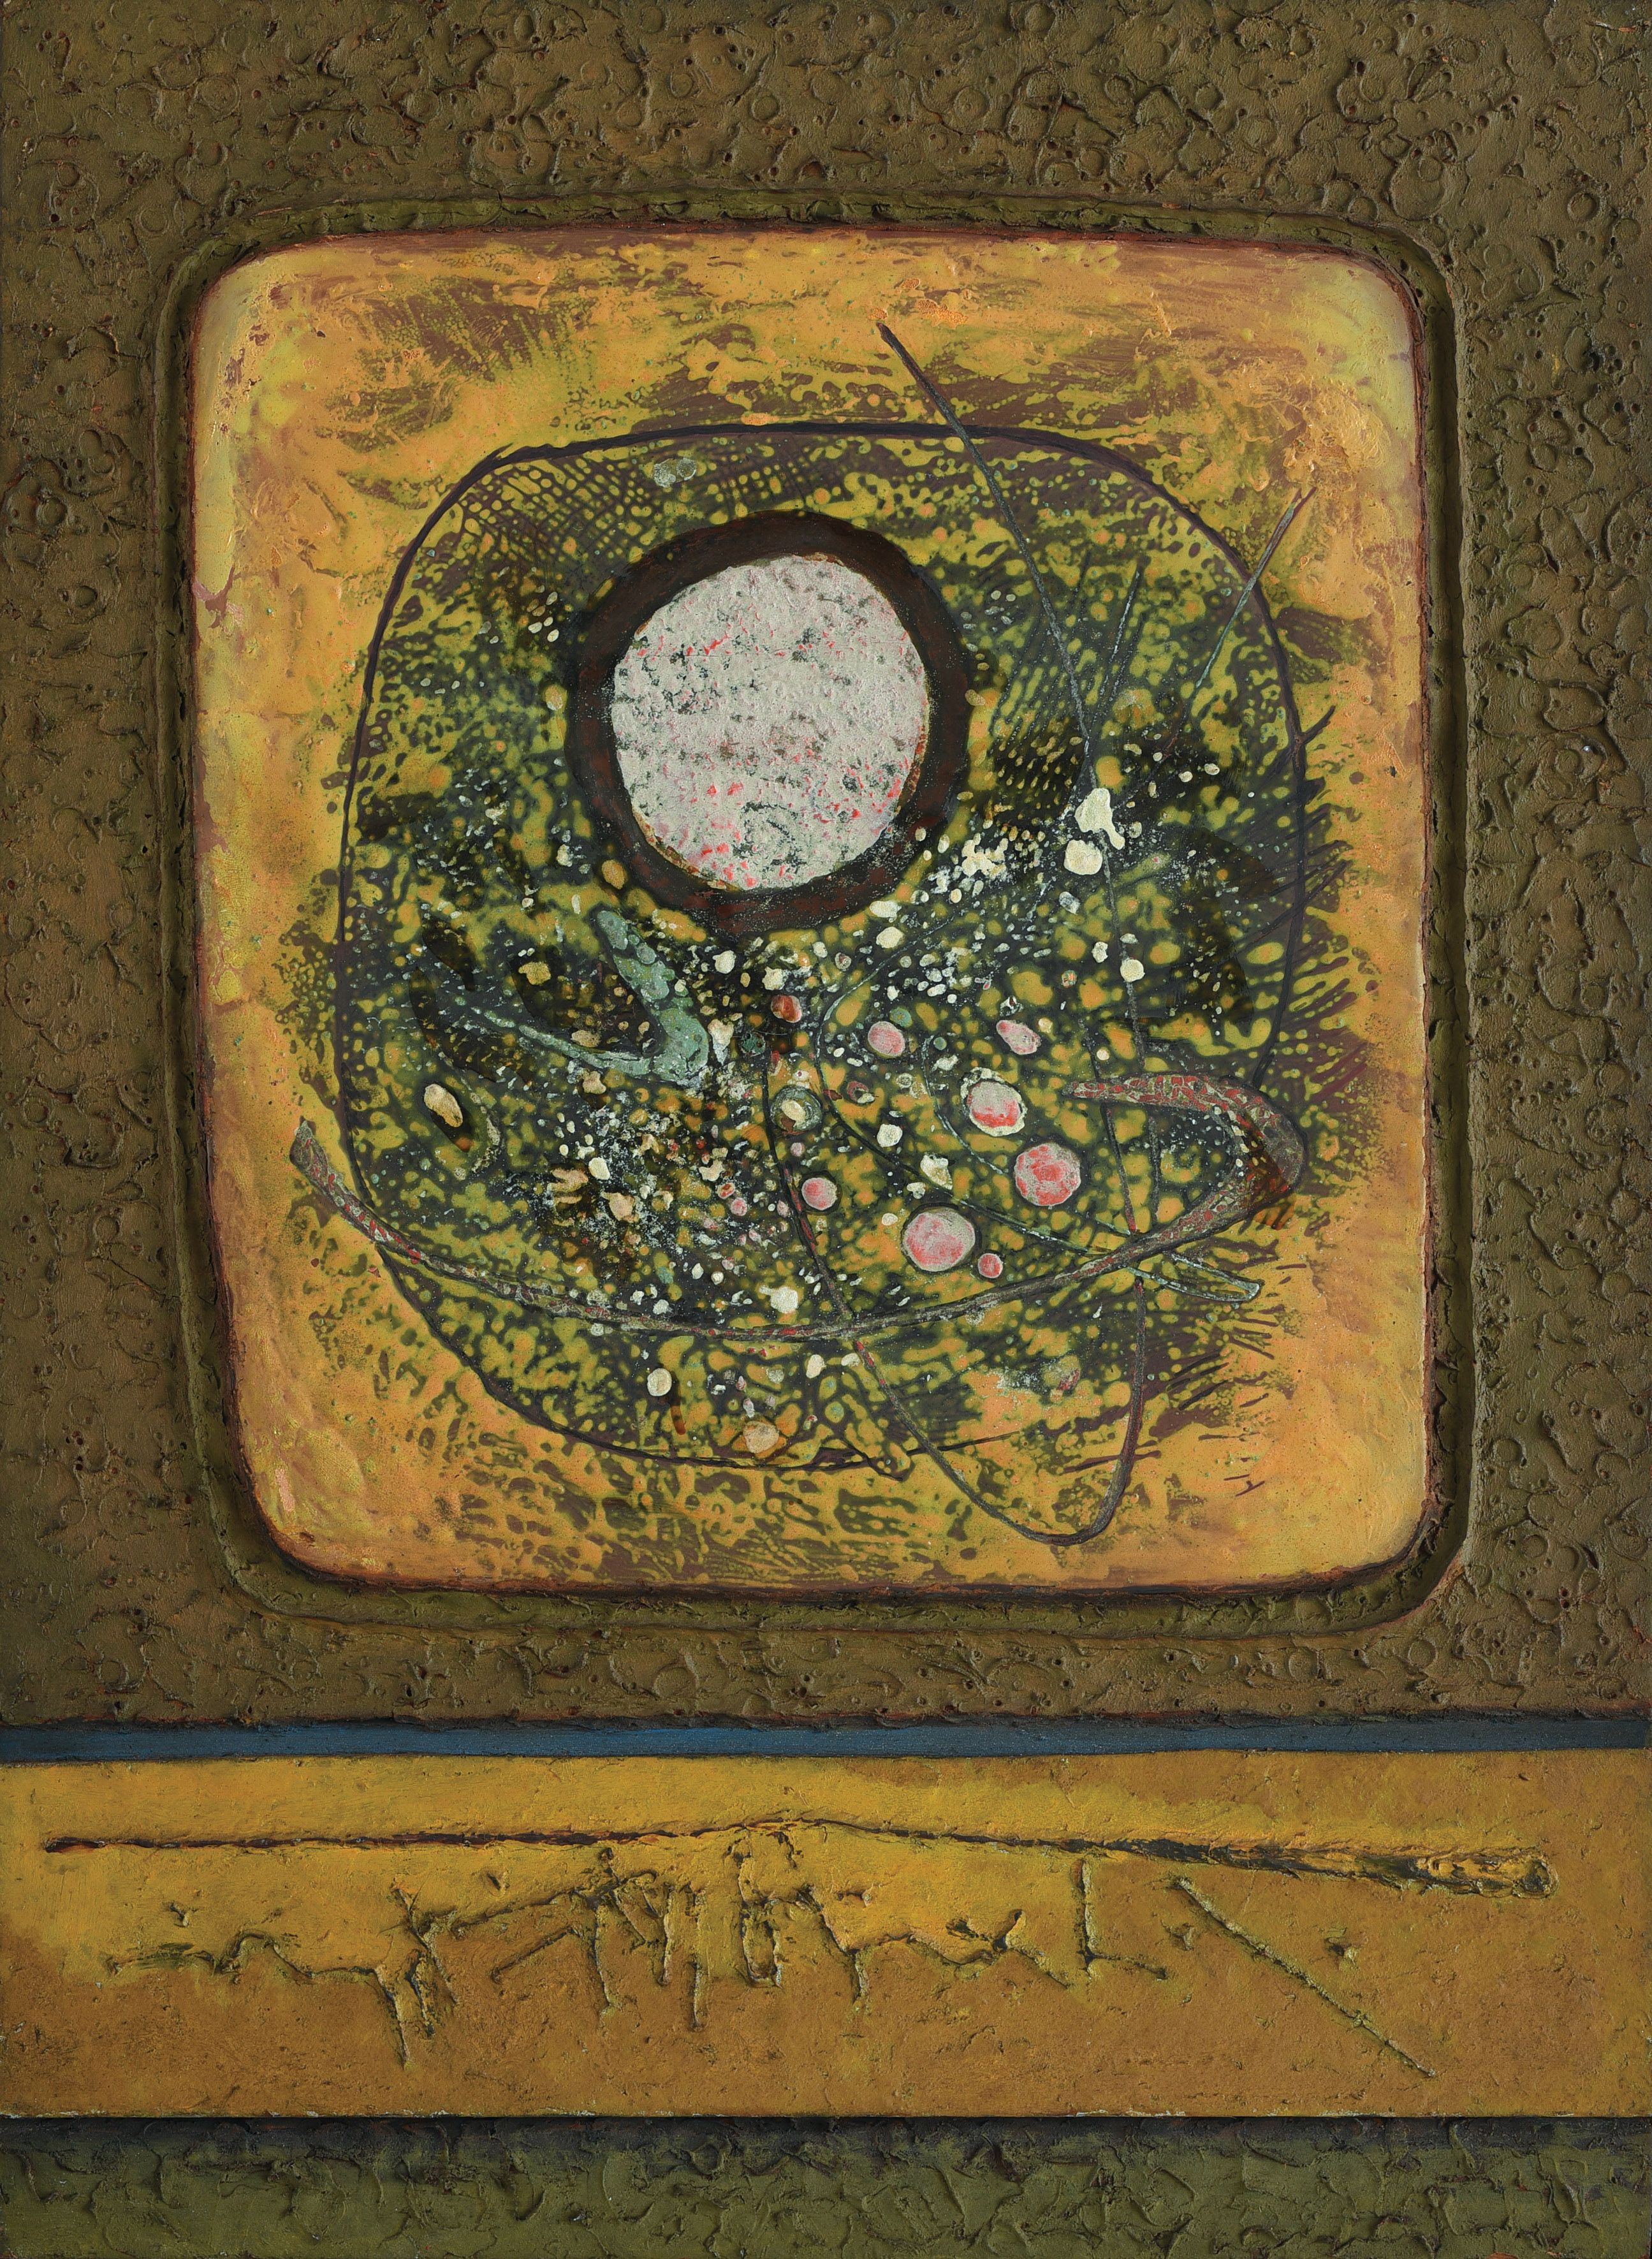 Cheong Soo Pieng, Radiance, mixed media on board, 84 x 61 cm, 1971